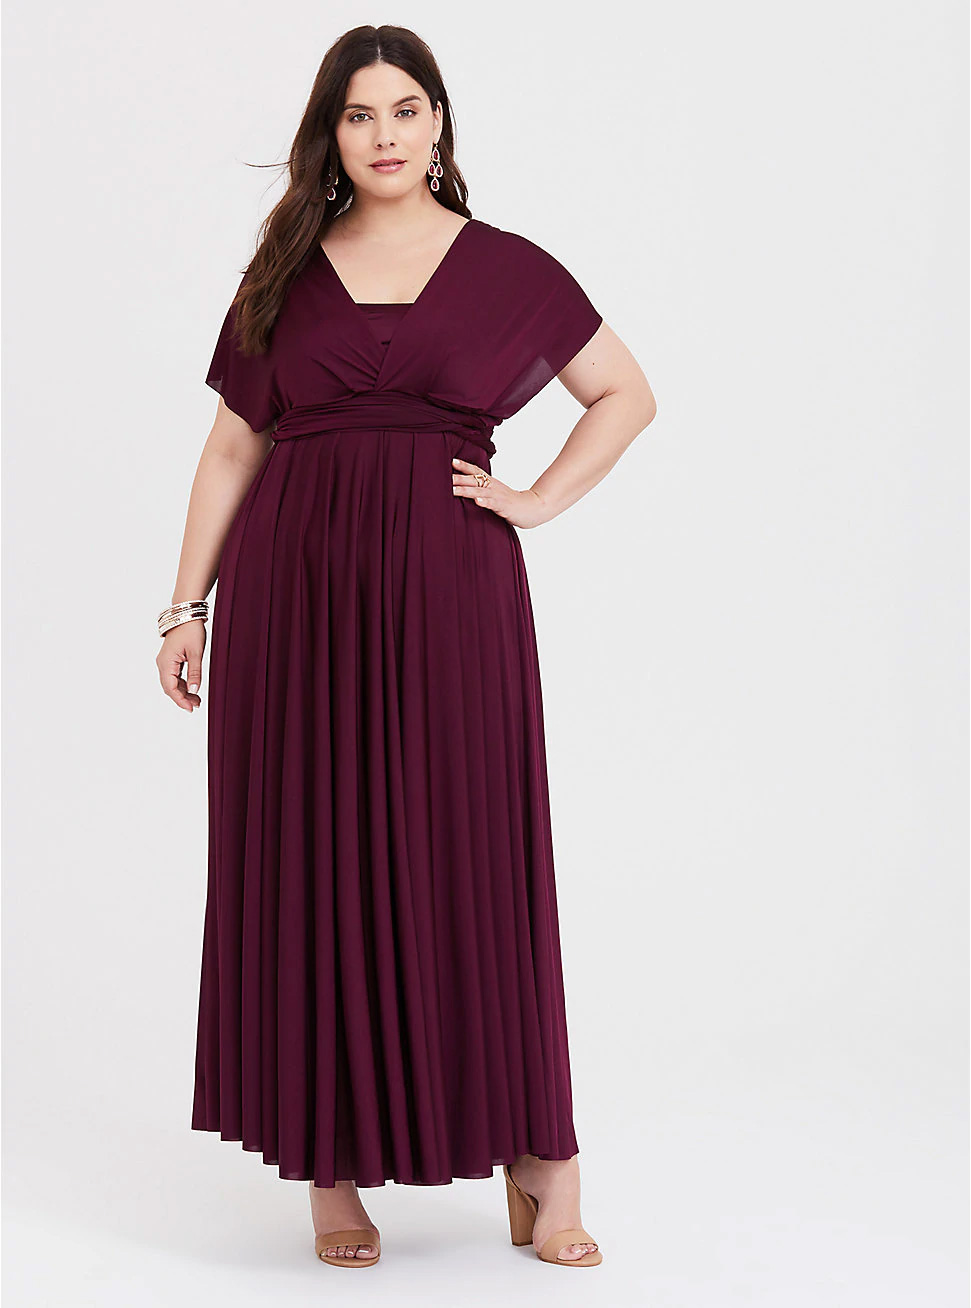 Plus Size Modest Bridesmaid Dresses | Style with Curves